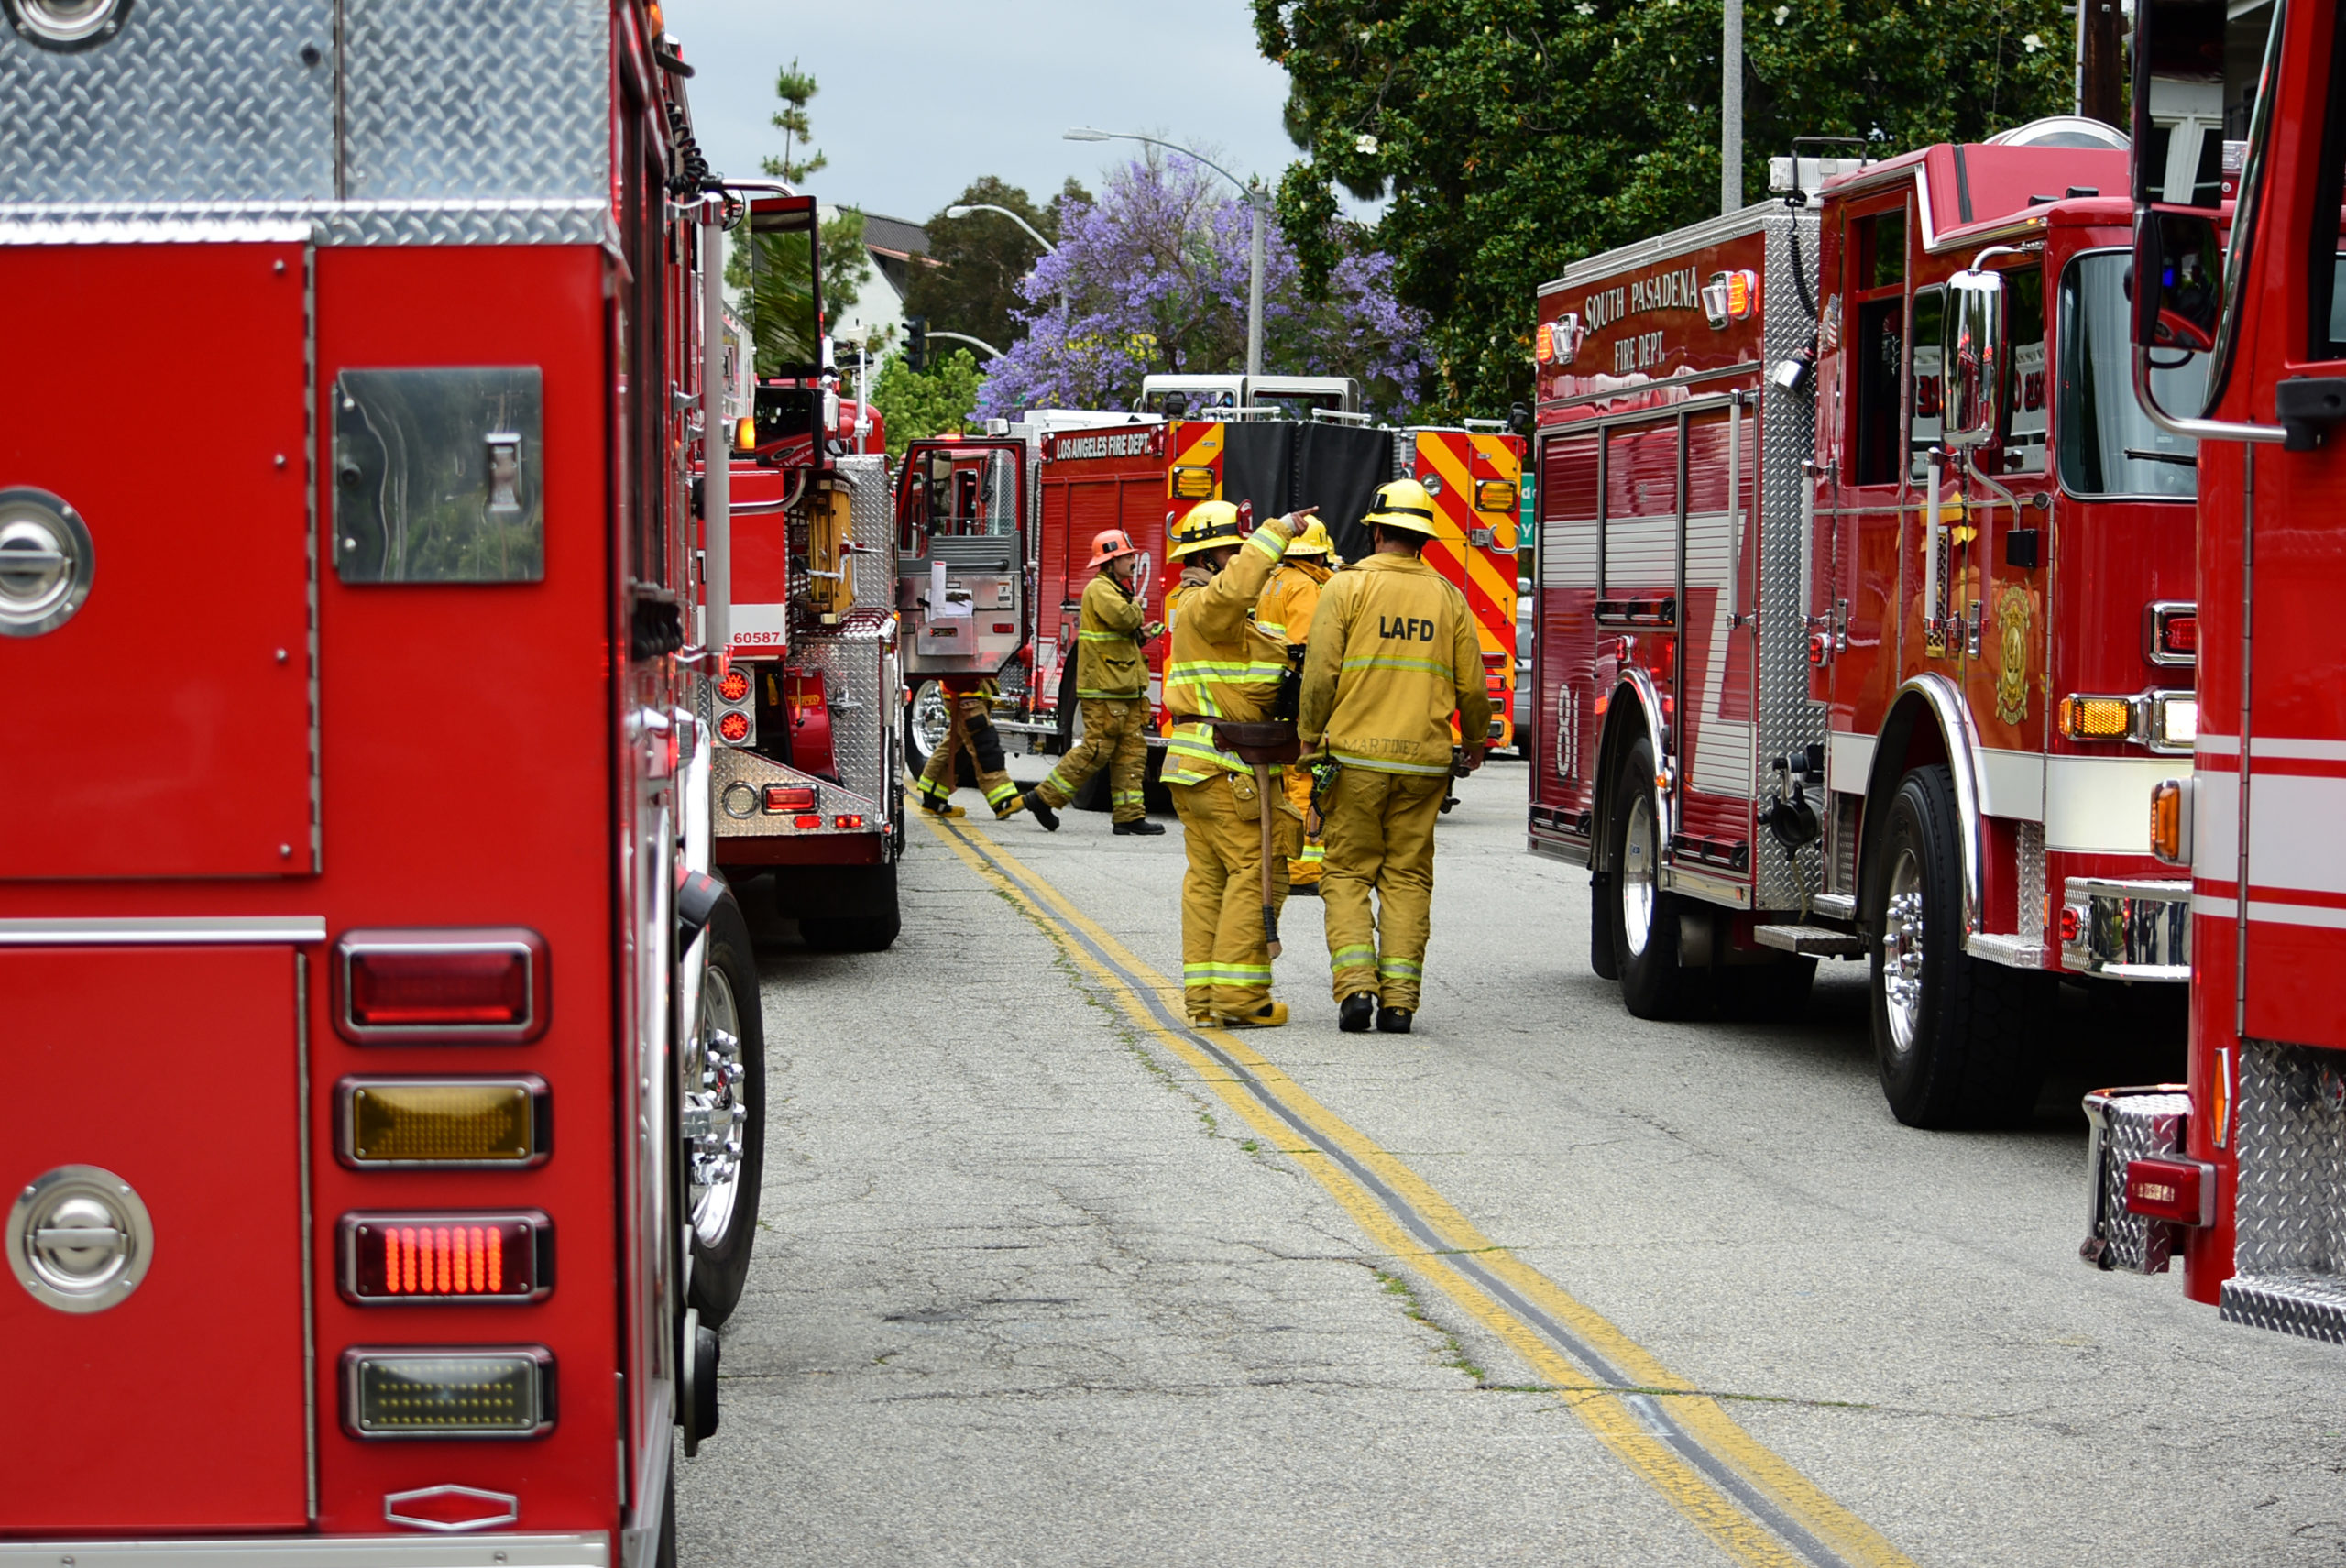 south-pasadena-news-06-05-2020-spfd-house-fire-monterey-road-los-angeles-12